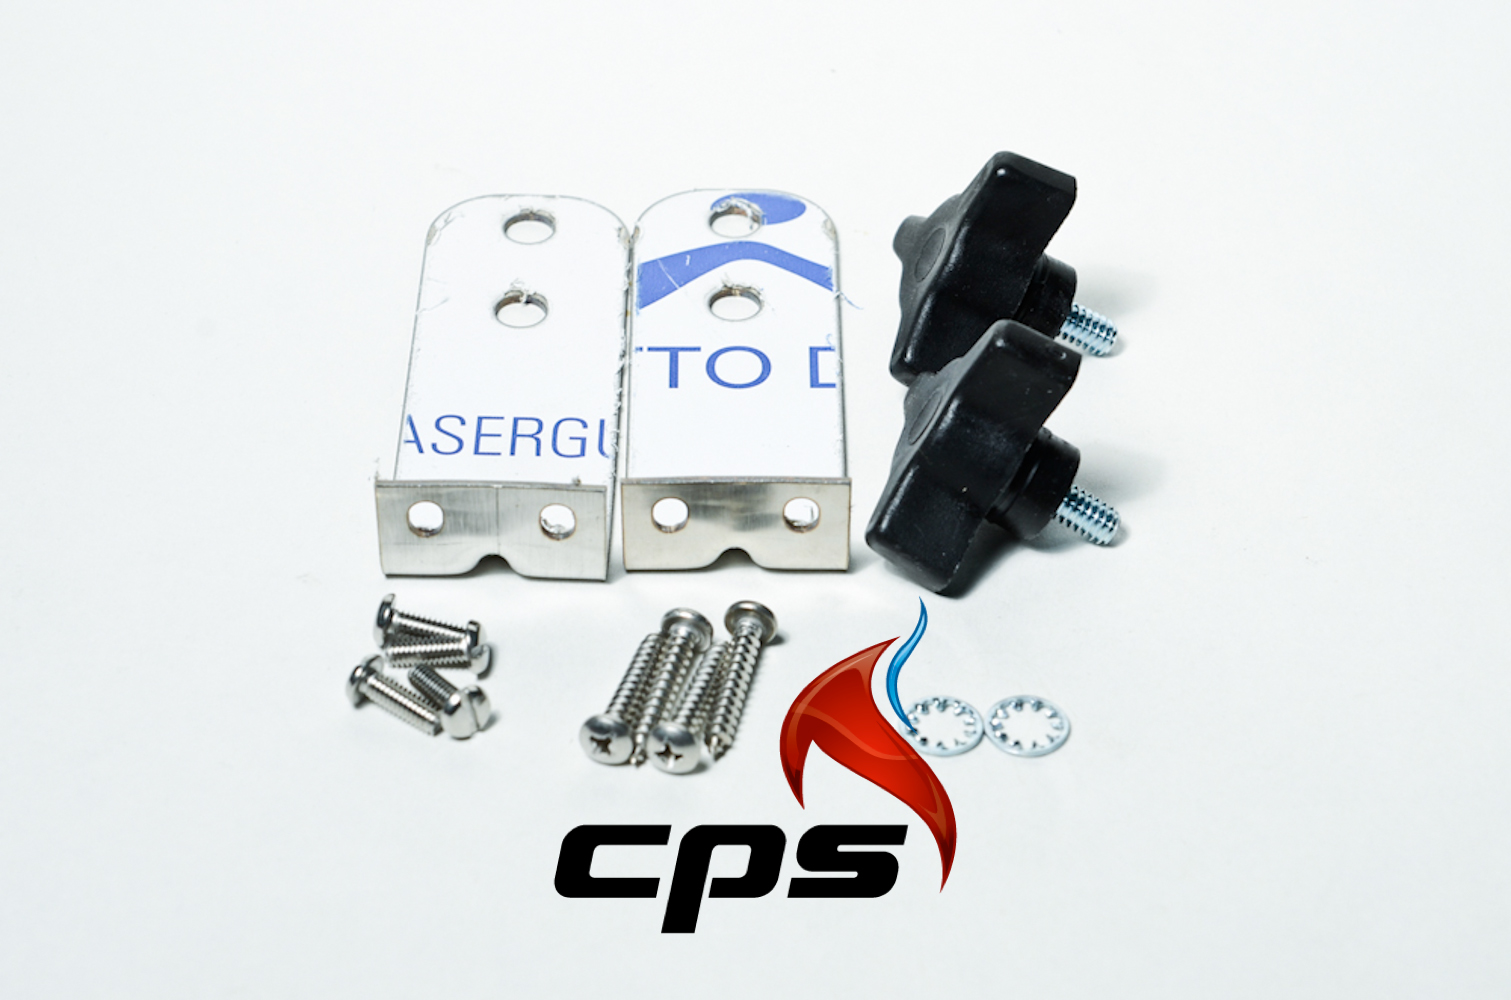 213-50432 - Fastron Parts/ Equipment (F.A.S.T.) - CPS